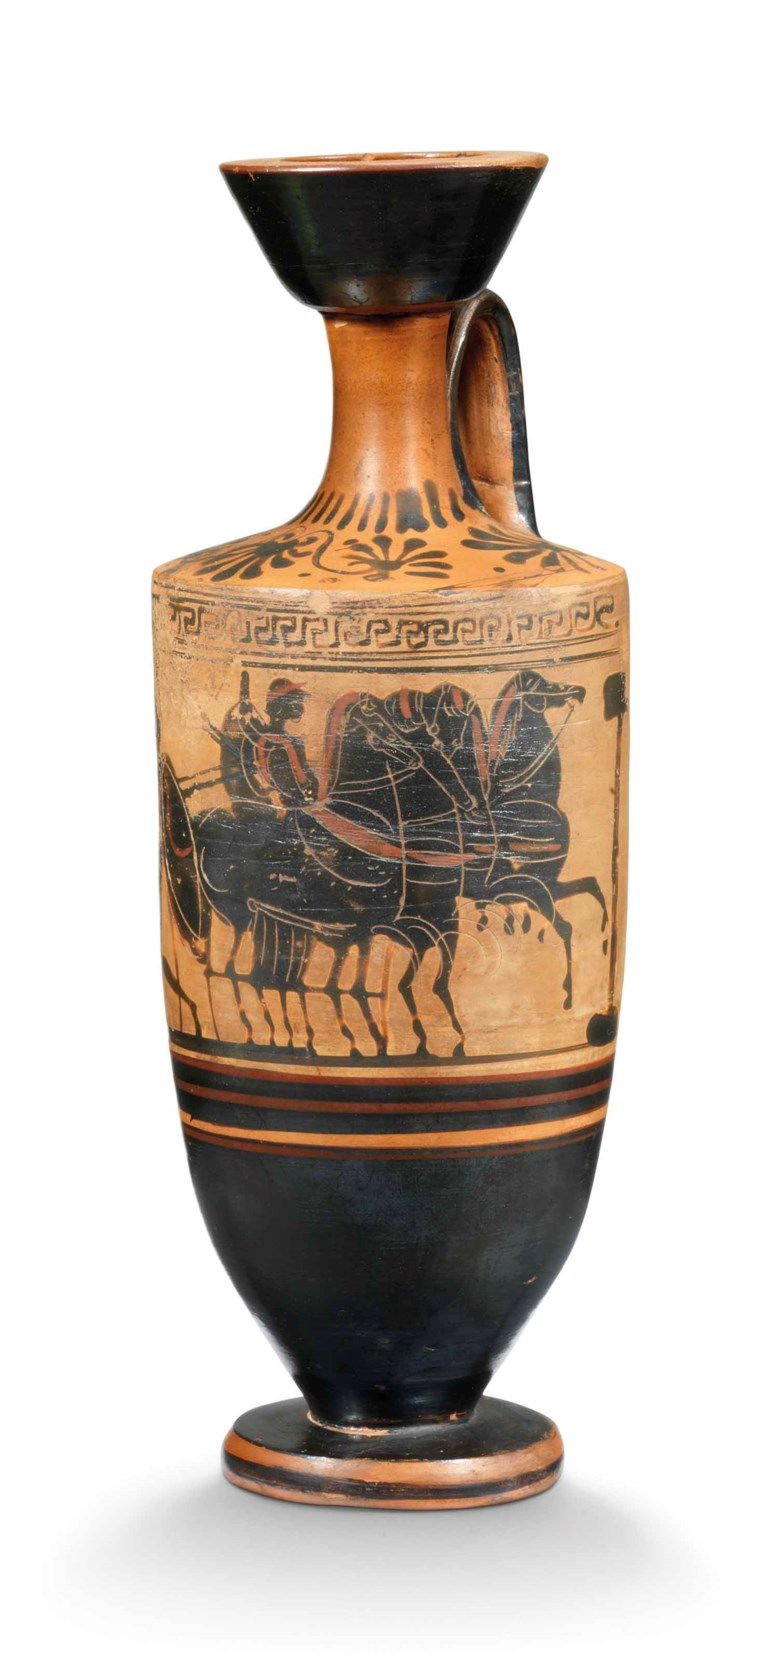 An Attic black-figured white-ground Lekythos, Circa 500 BC. 9¾  in (24.8  cm) high. Sold for£6,875 on 3 July 2018 at Christie's in London